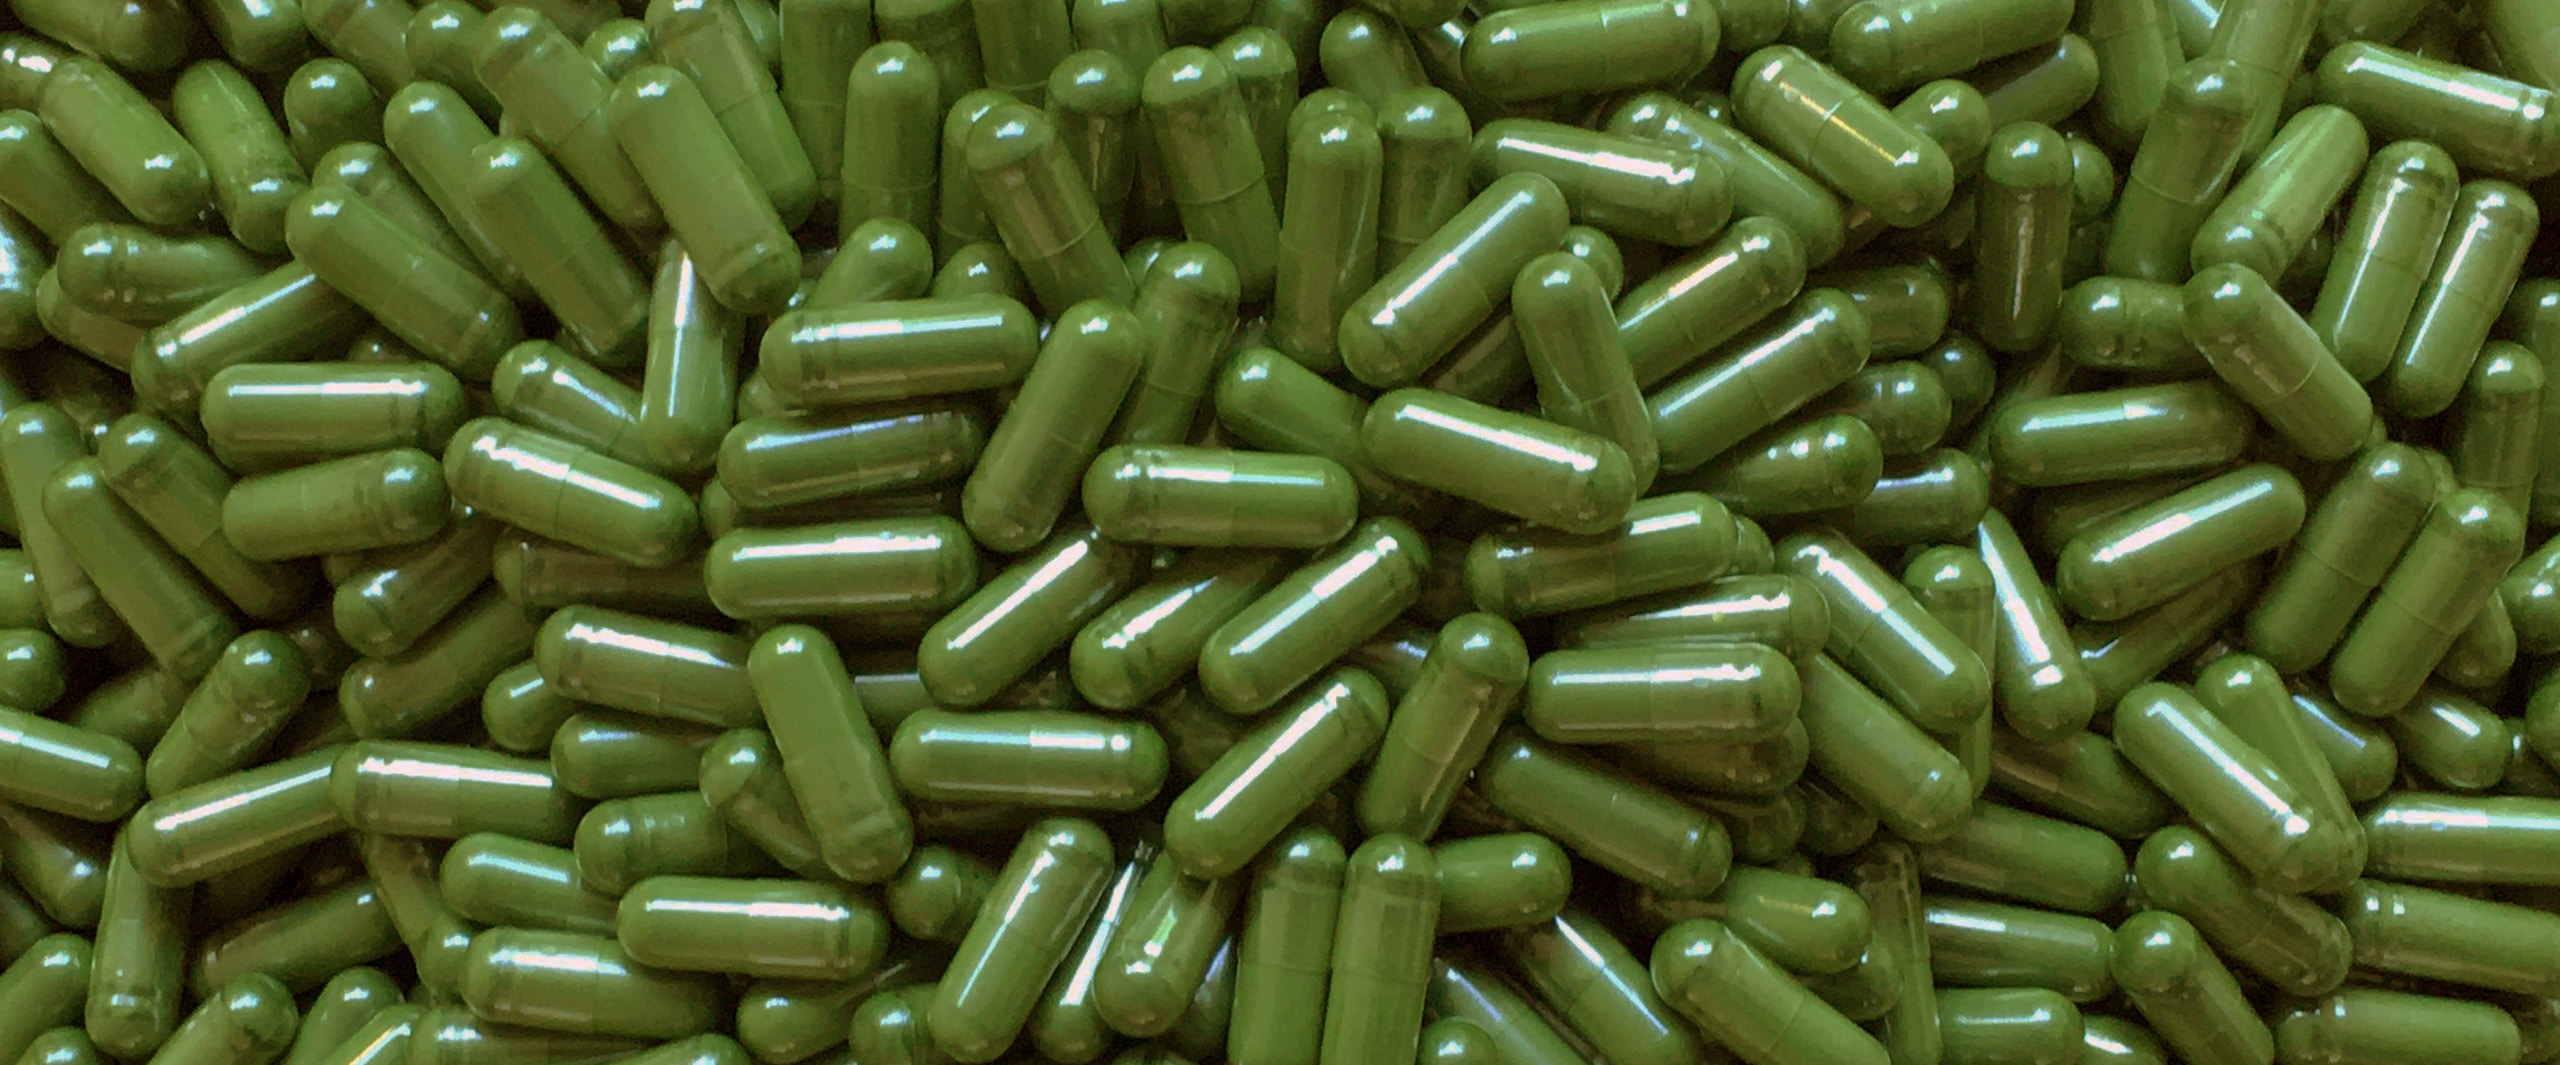 plankton-voedingsstoffen-capsules_winter